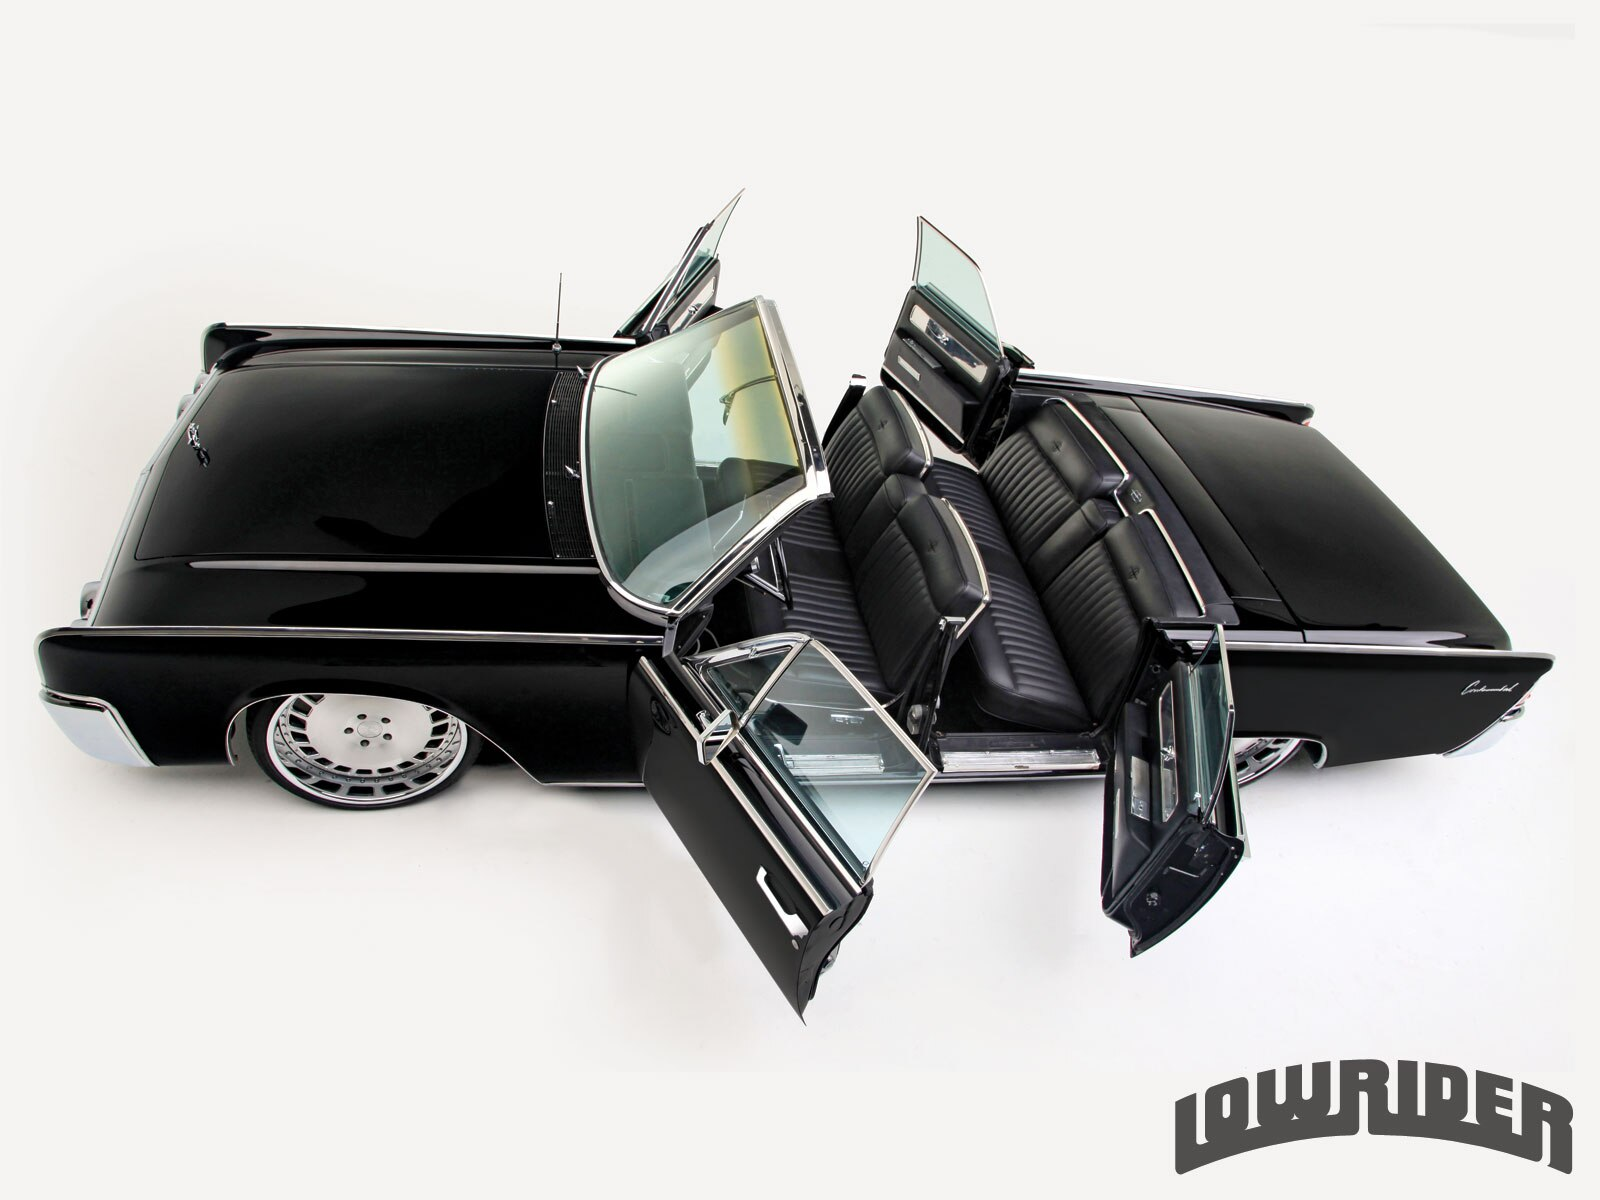 1212 Lrmp 01 O 1963 Lincoln Continental Convertible Suicide Doors